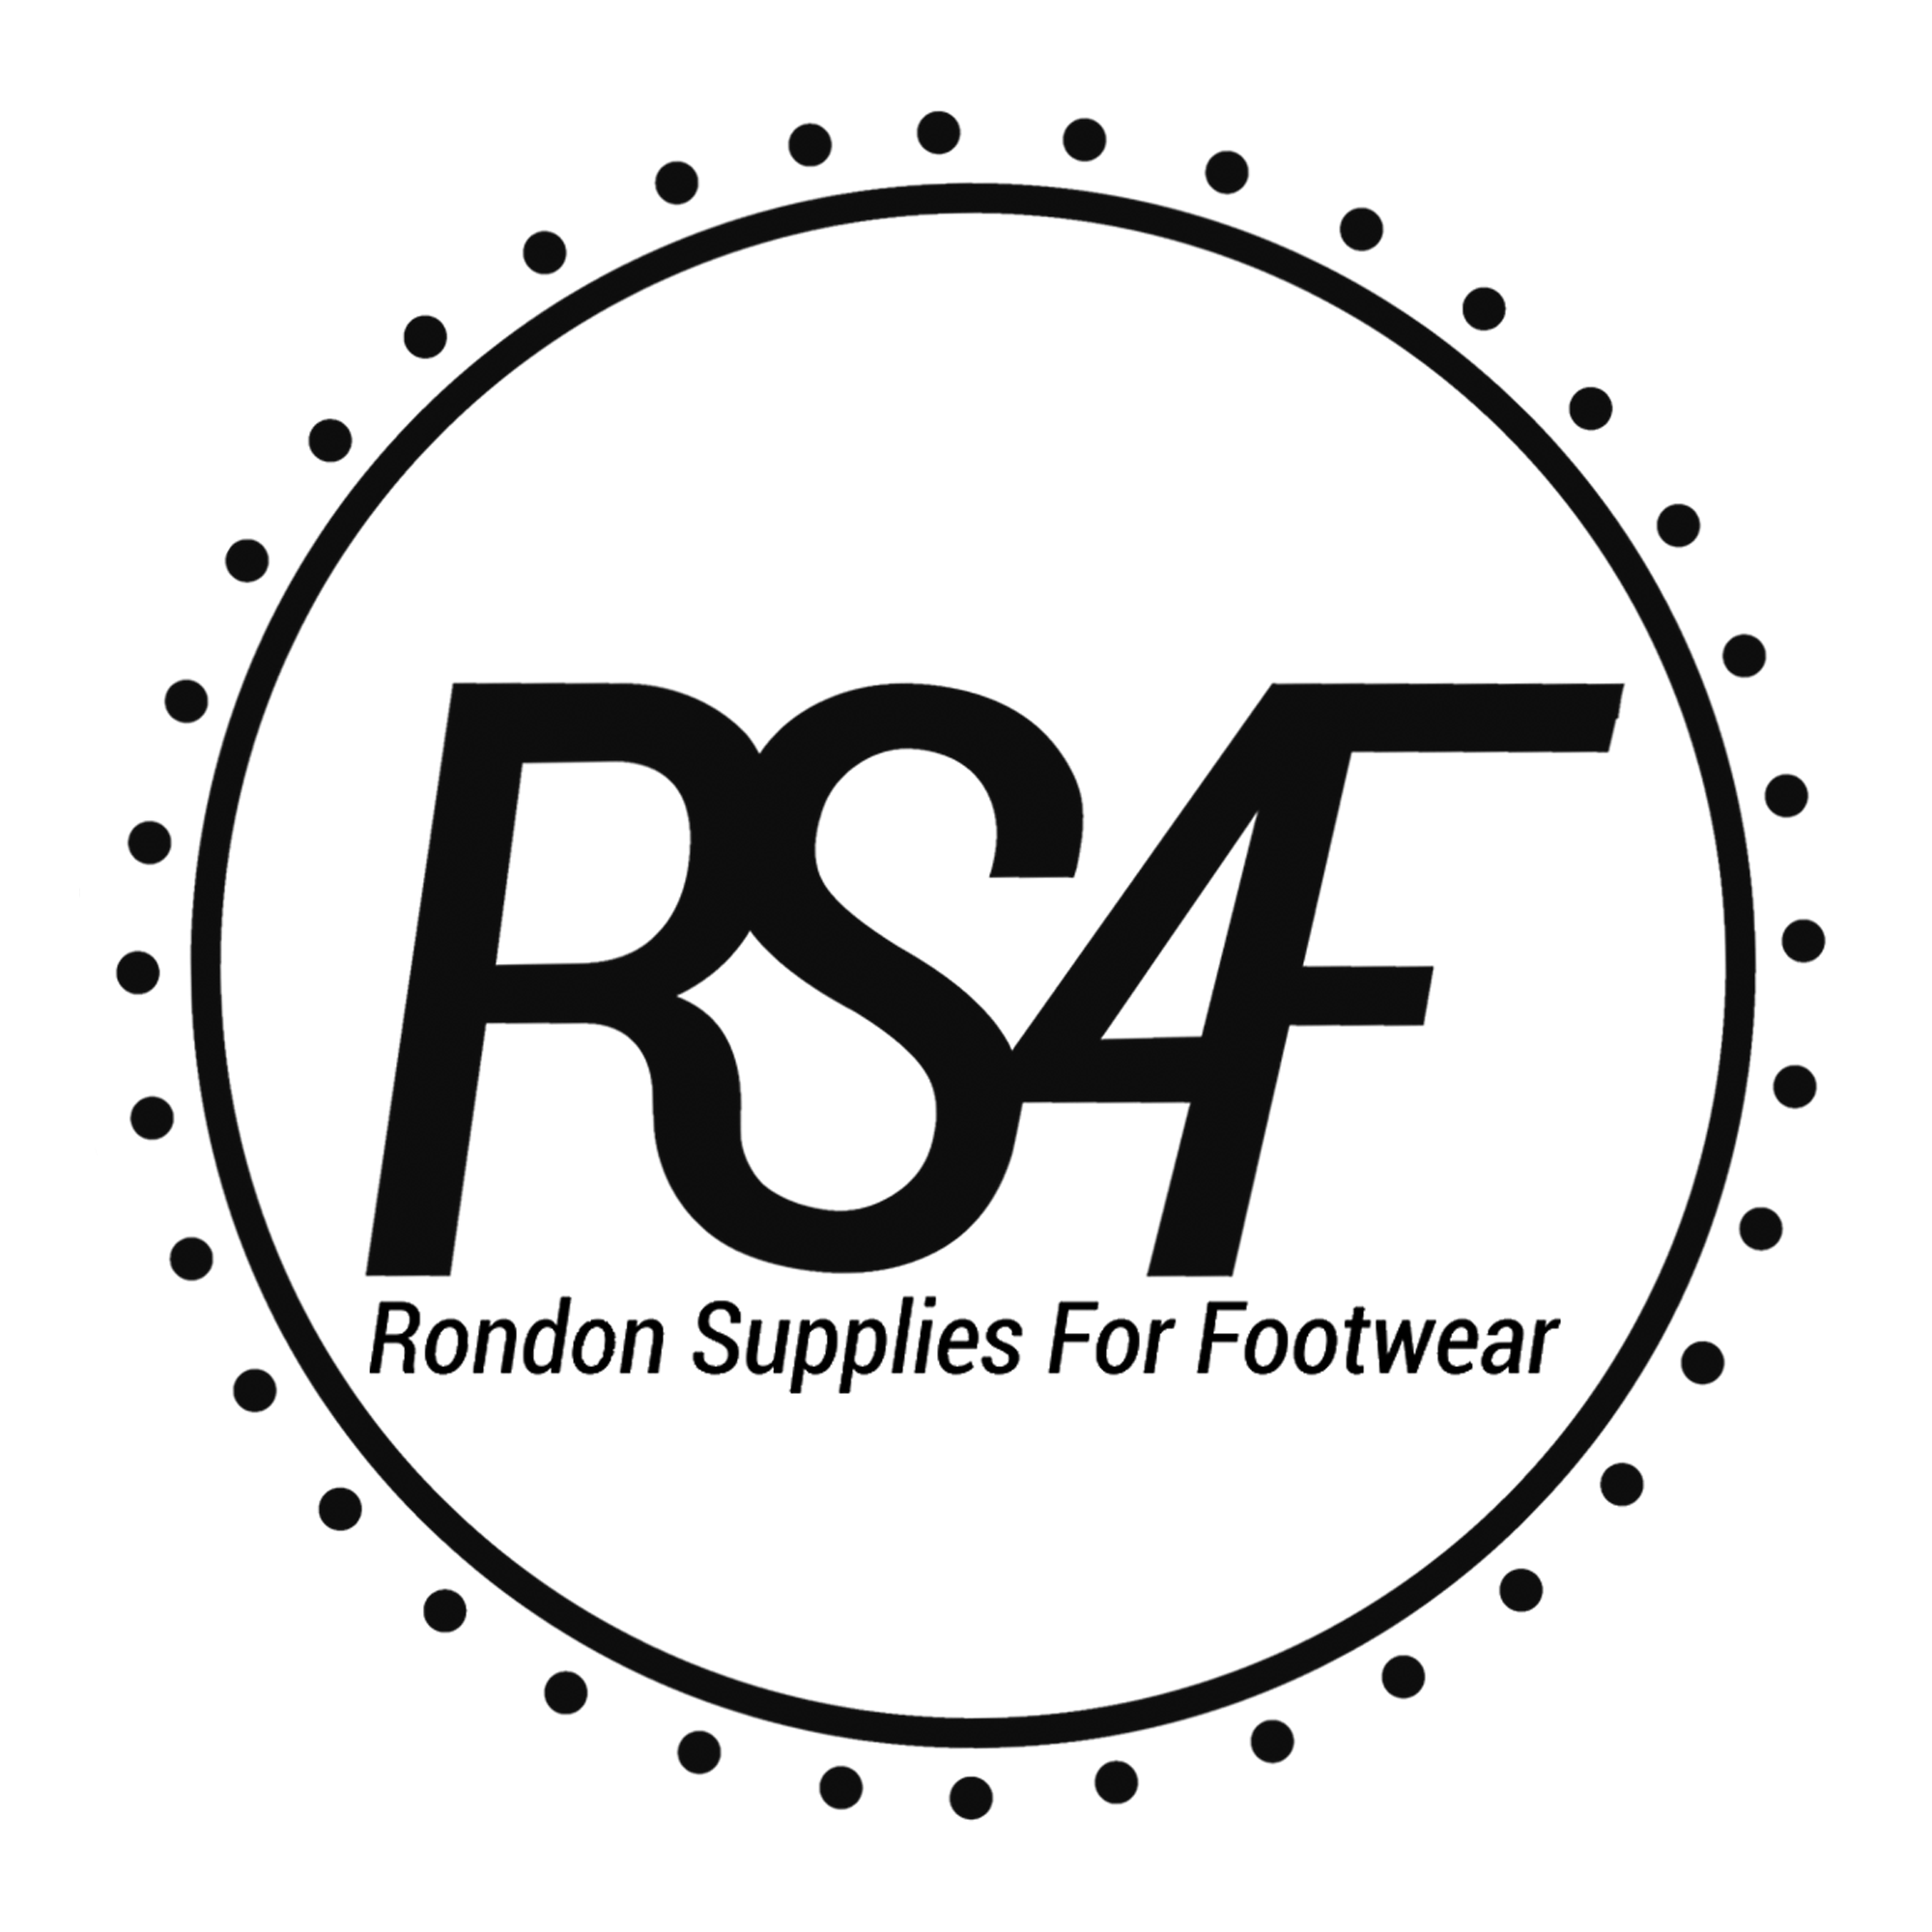 Rondon Supplies For Footwear